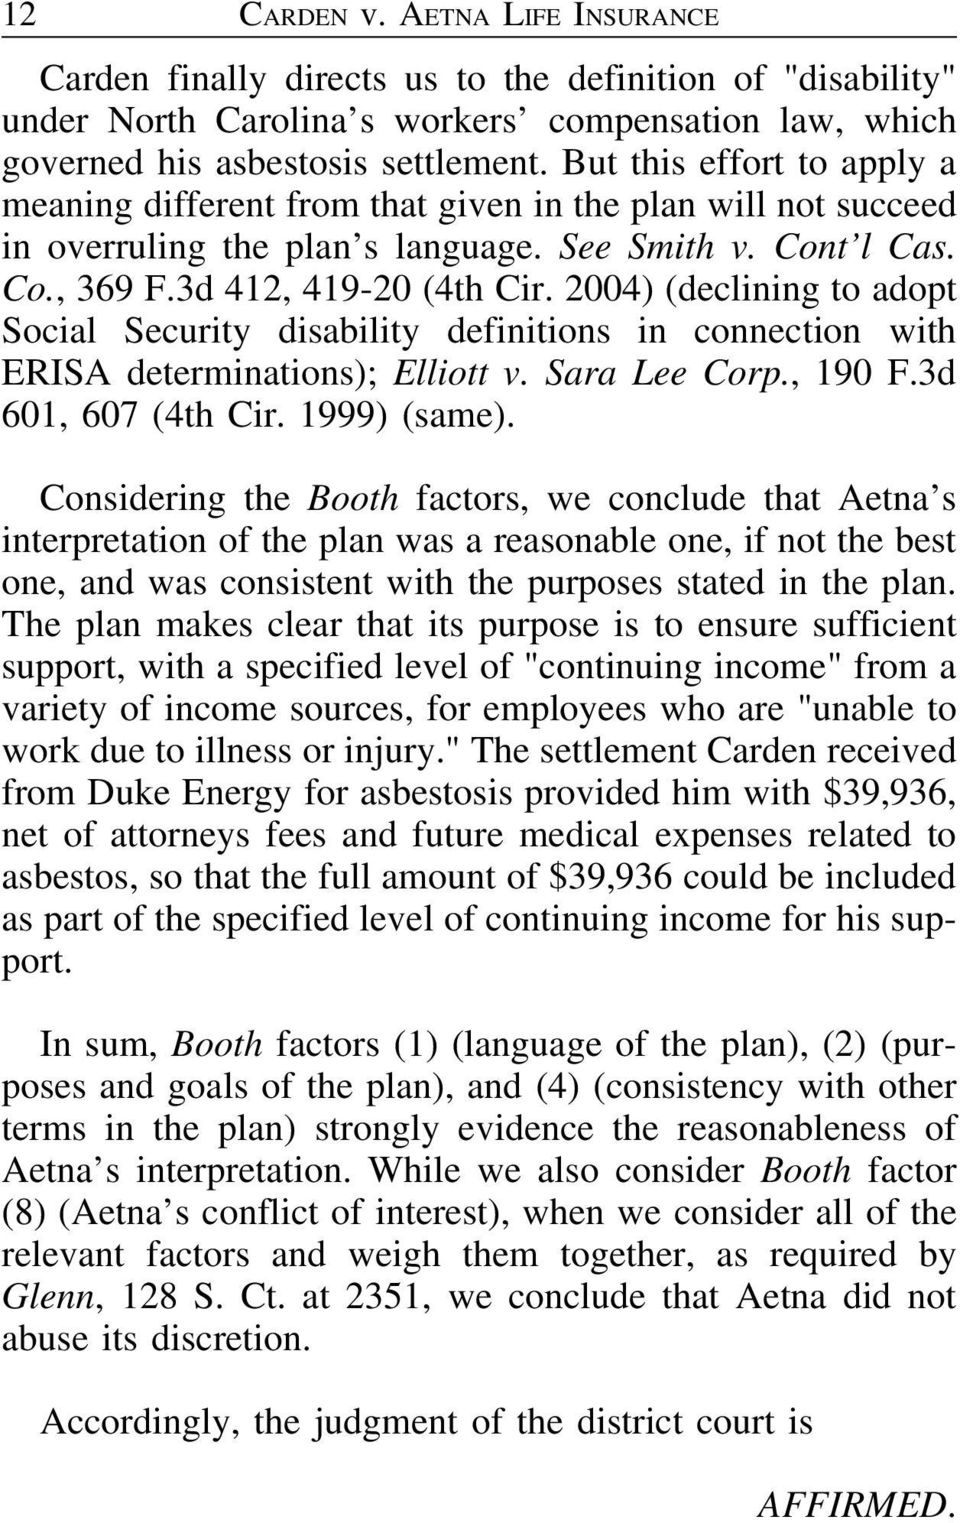 2004) (declining to adopt Social Security disability definitions in connection with ERISA determinations); Elliott v. Sara Lee Corp., 190 F.3d 601, 607 (4th Cir. 1999) (same).